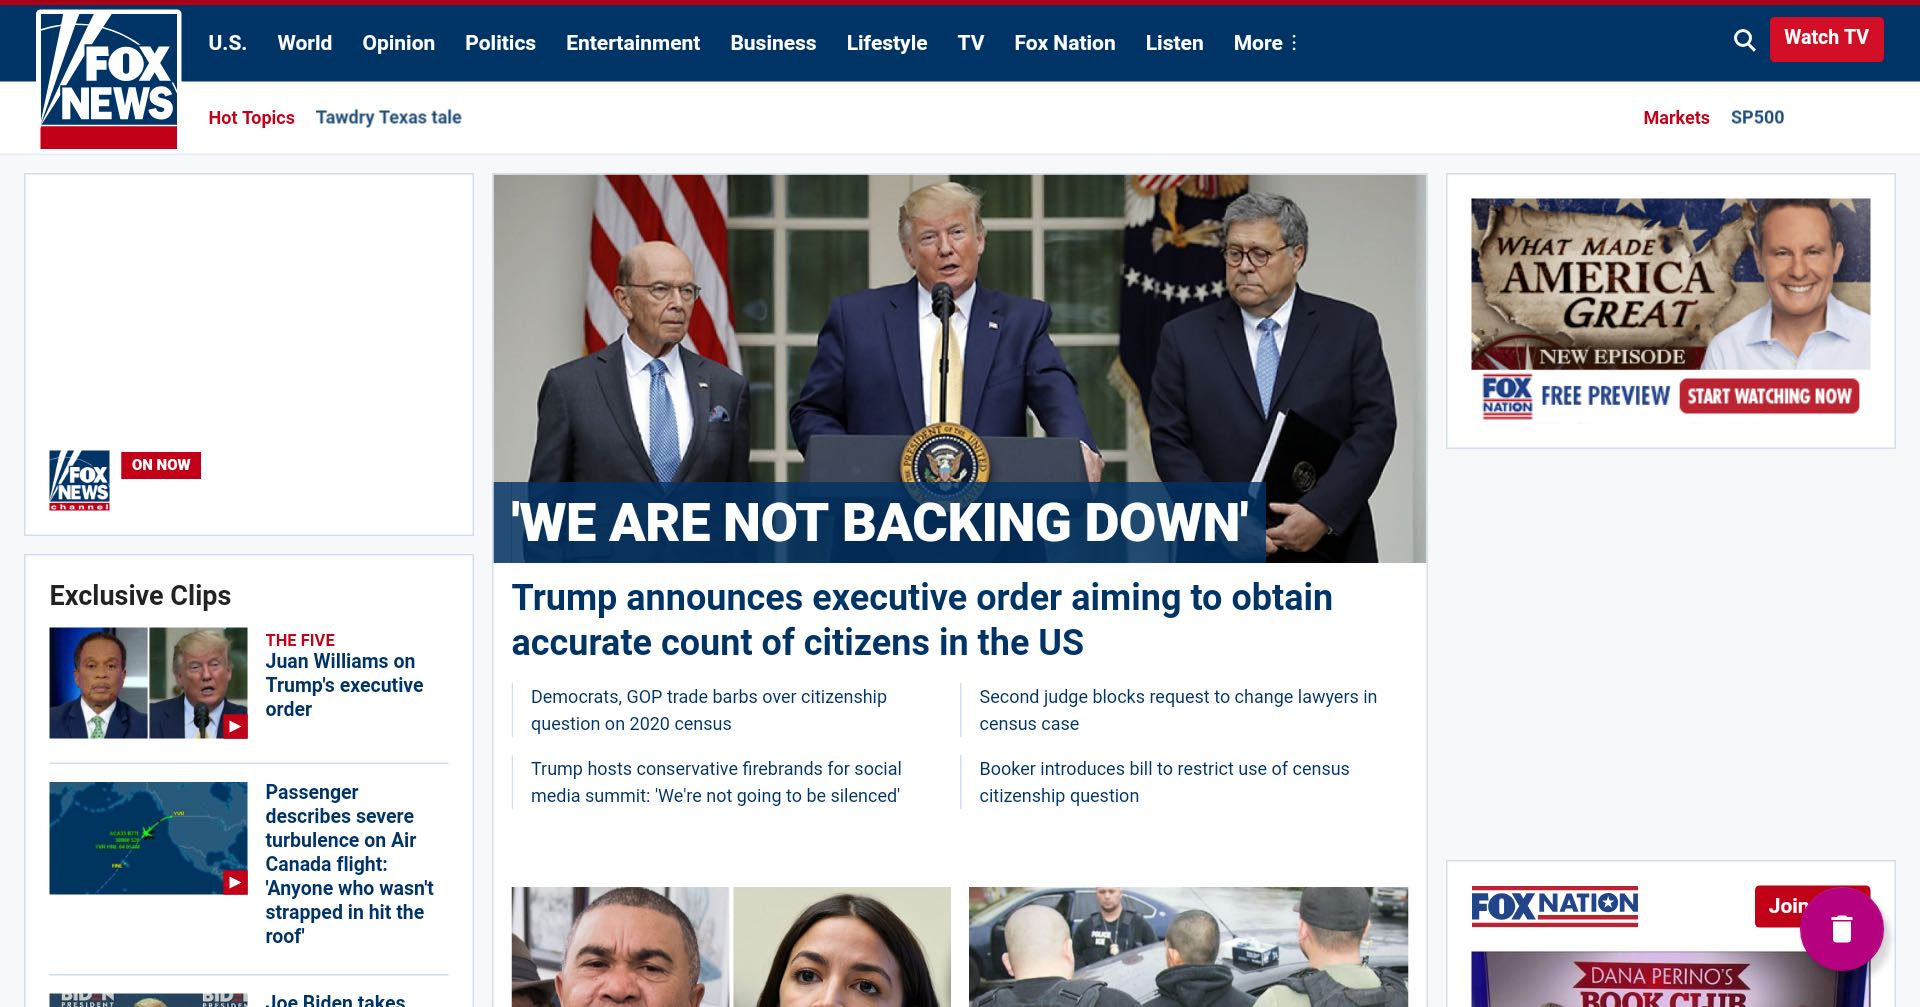 The Fox News home page on July 7, 2019